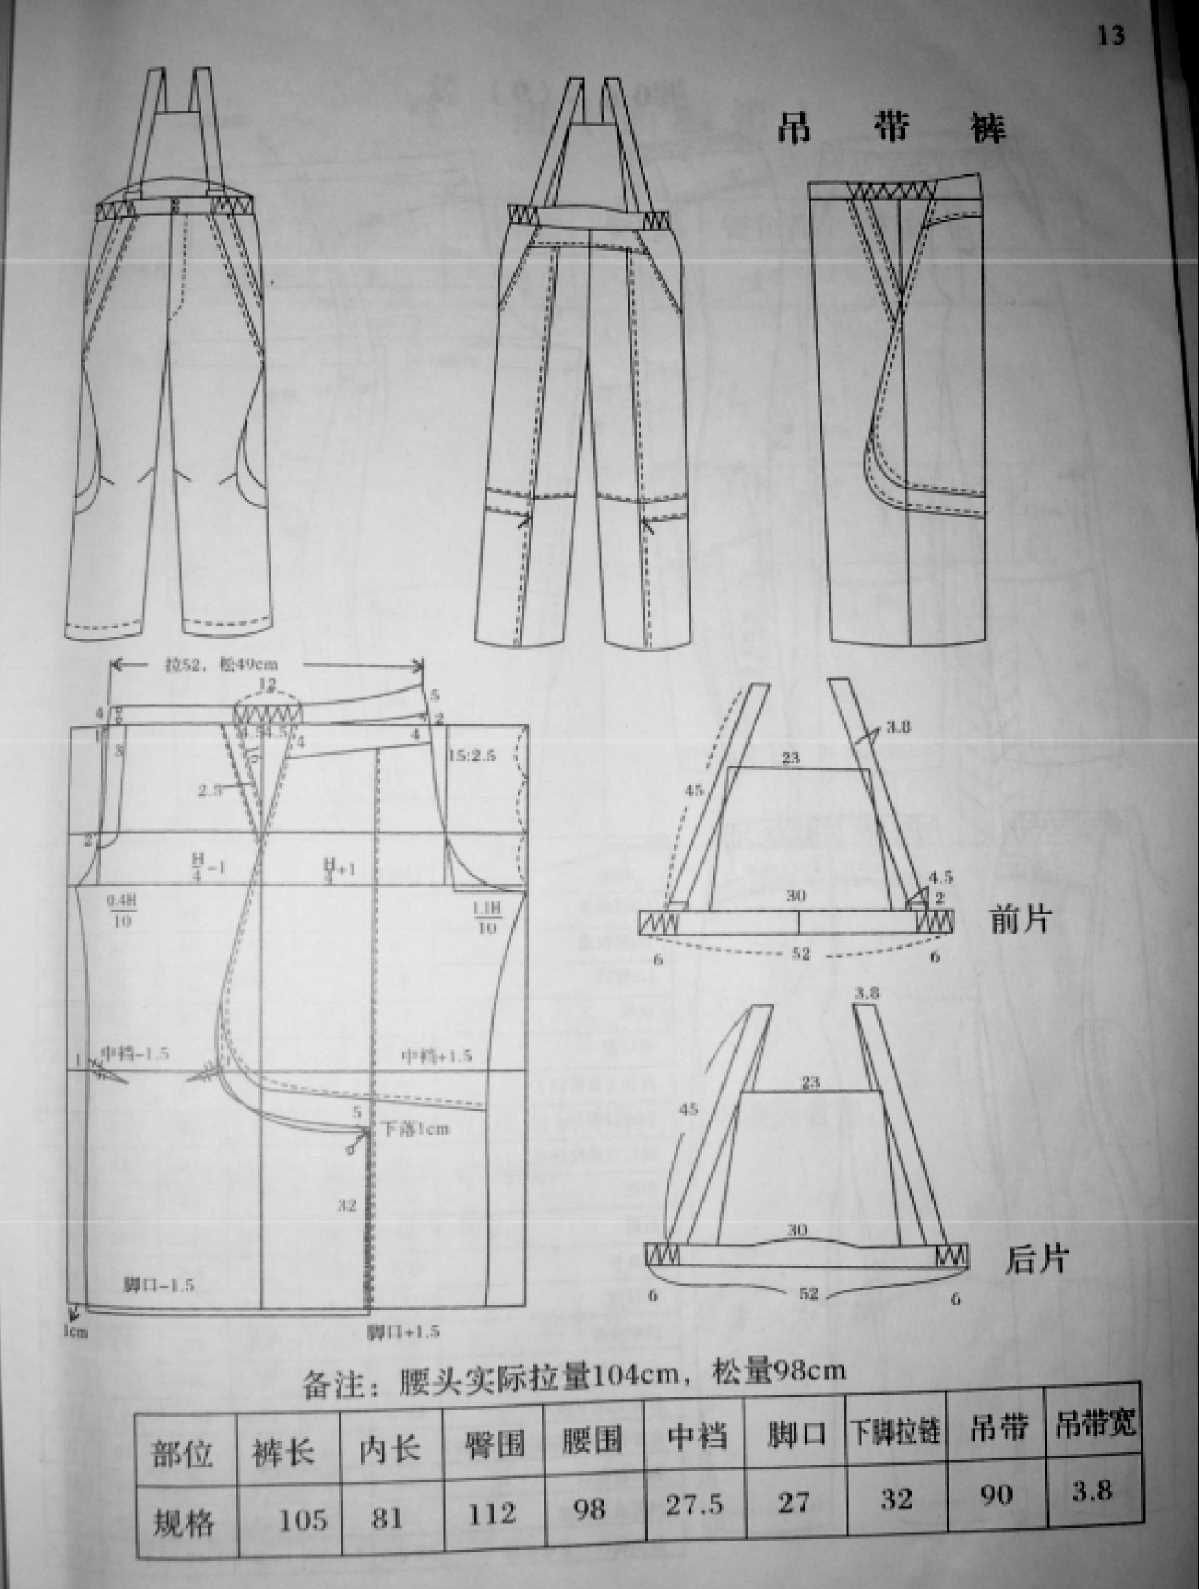 Pin by johanna zhang on pola pinterest sewing techniques pattern trousers pattern making paper patterns sewing techniques sew patrones sewing couture sewing techniques paper models jeuxipadfo Image collections